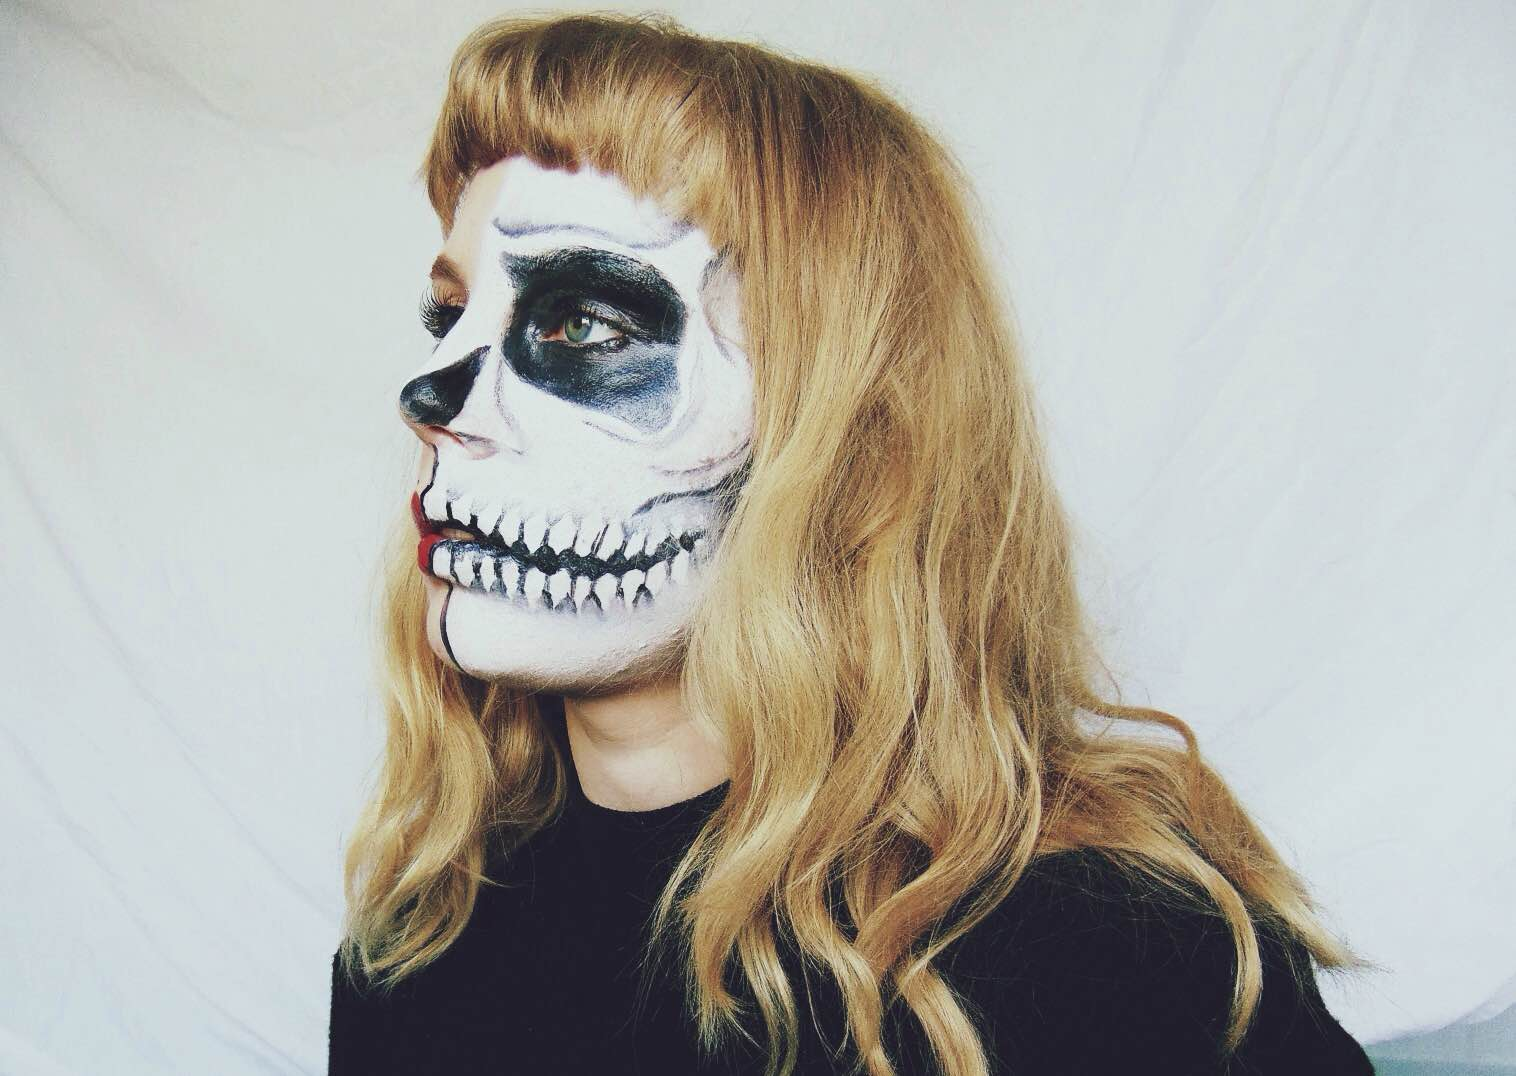 half skull makeup, half skull half pin up, halloween makeup, halloween face paint, skull face paint, halloween ideas girls, halloween makeup females, alternative halloween